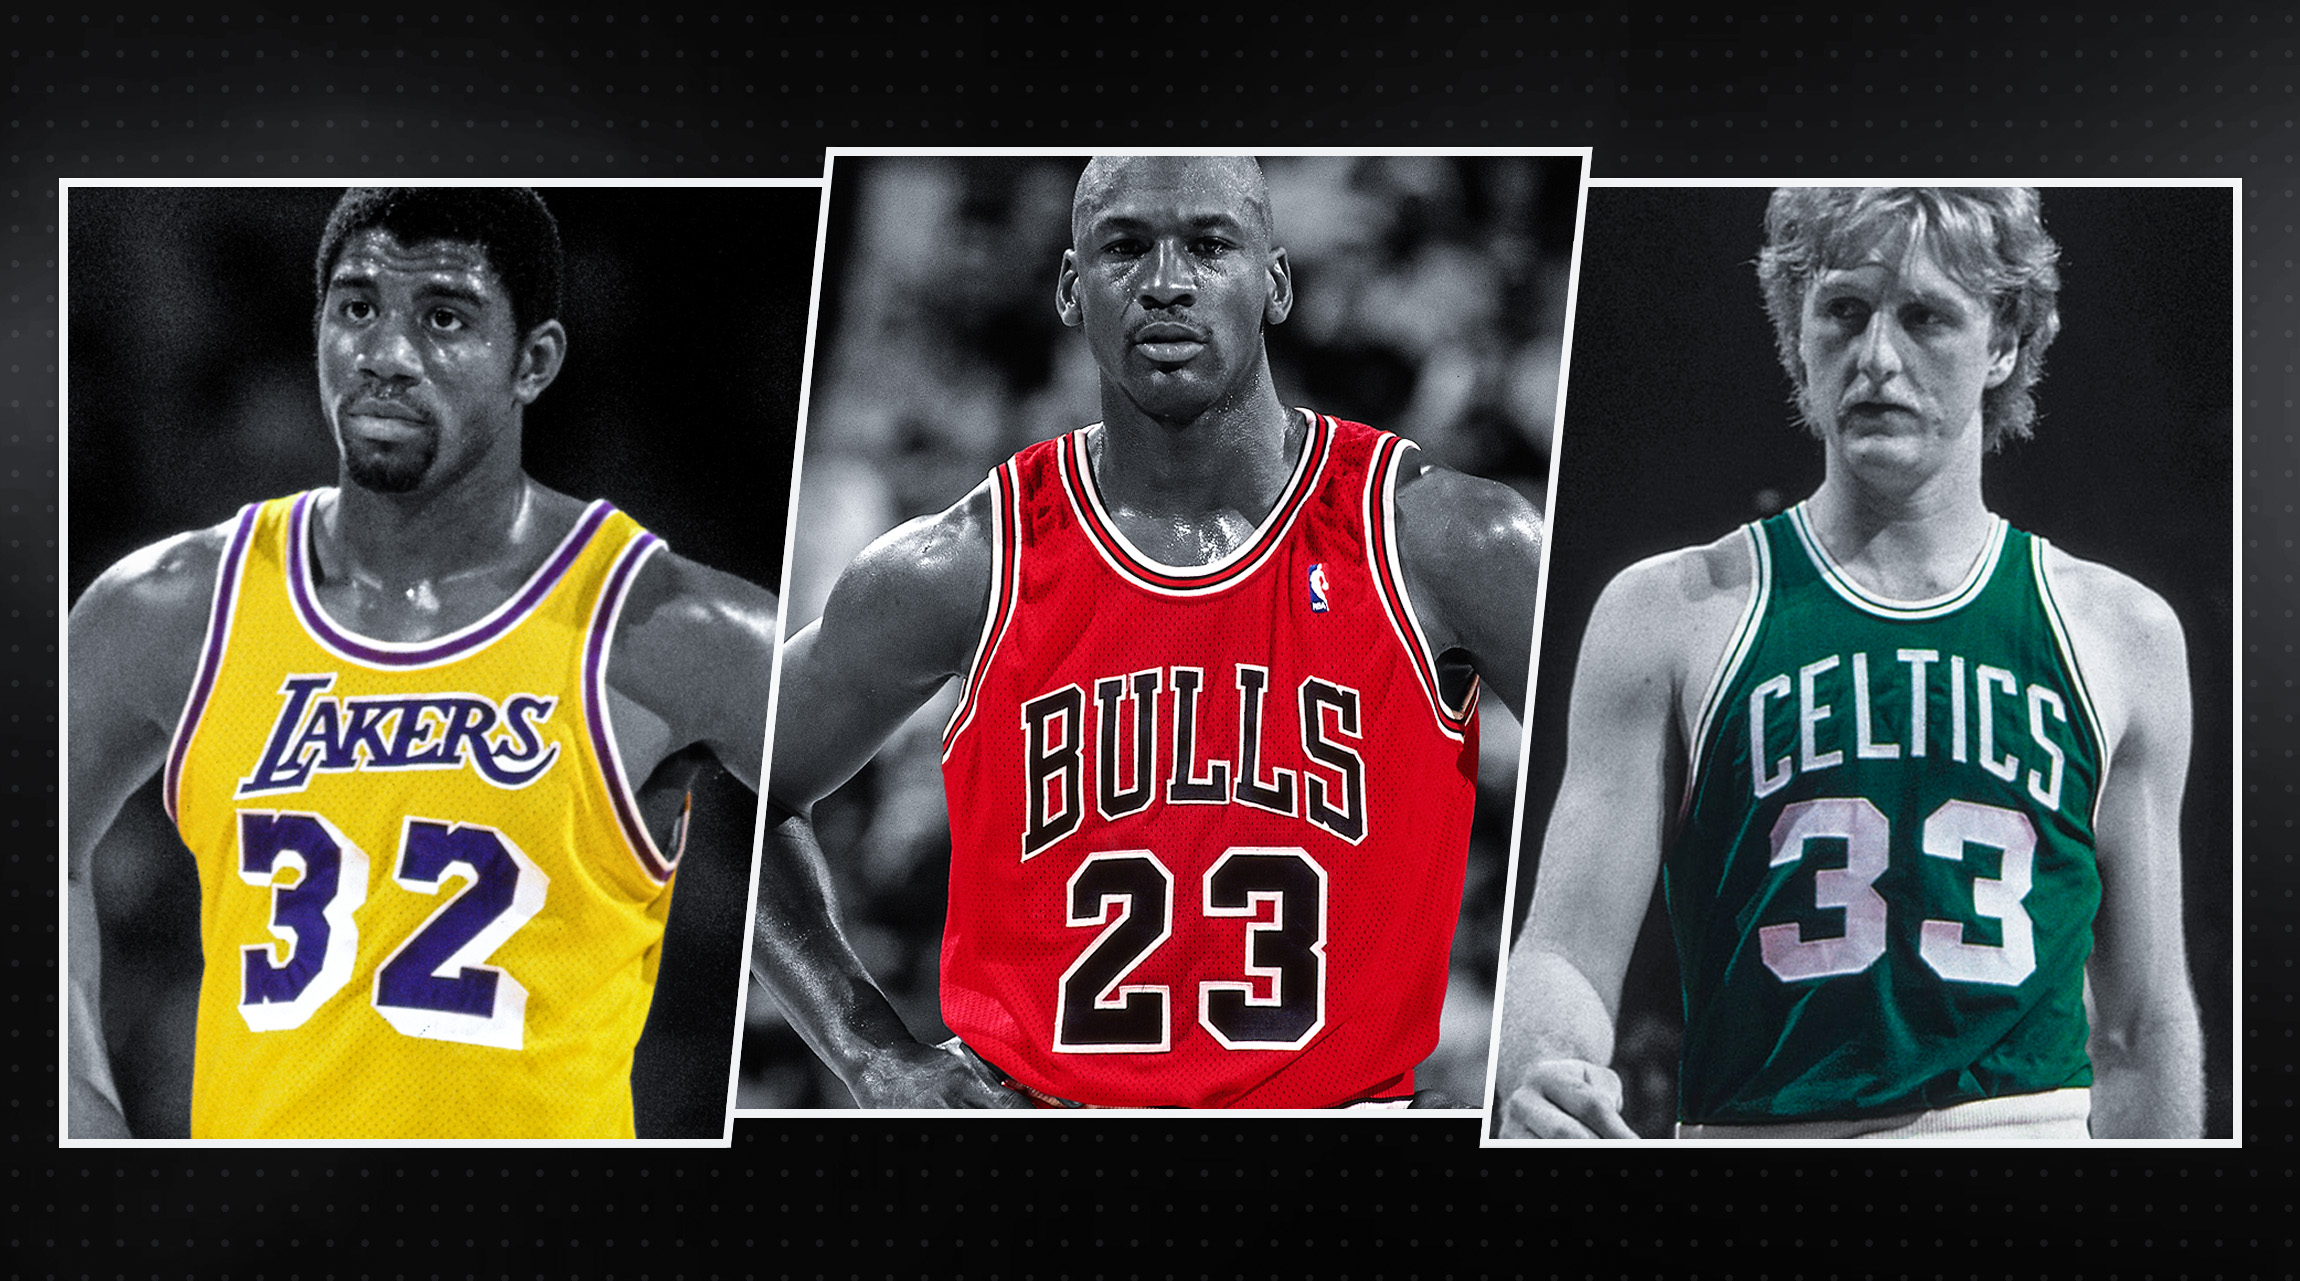 d2a056d212aa NBA jerseys  Ranking the 30 greatest in history